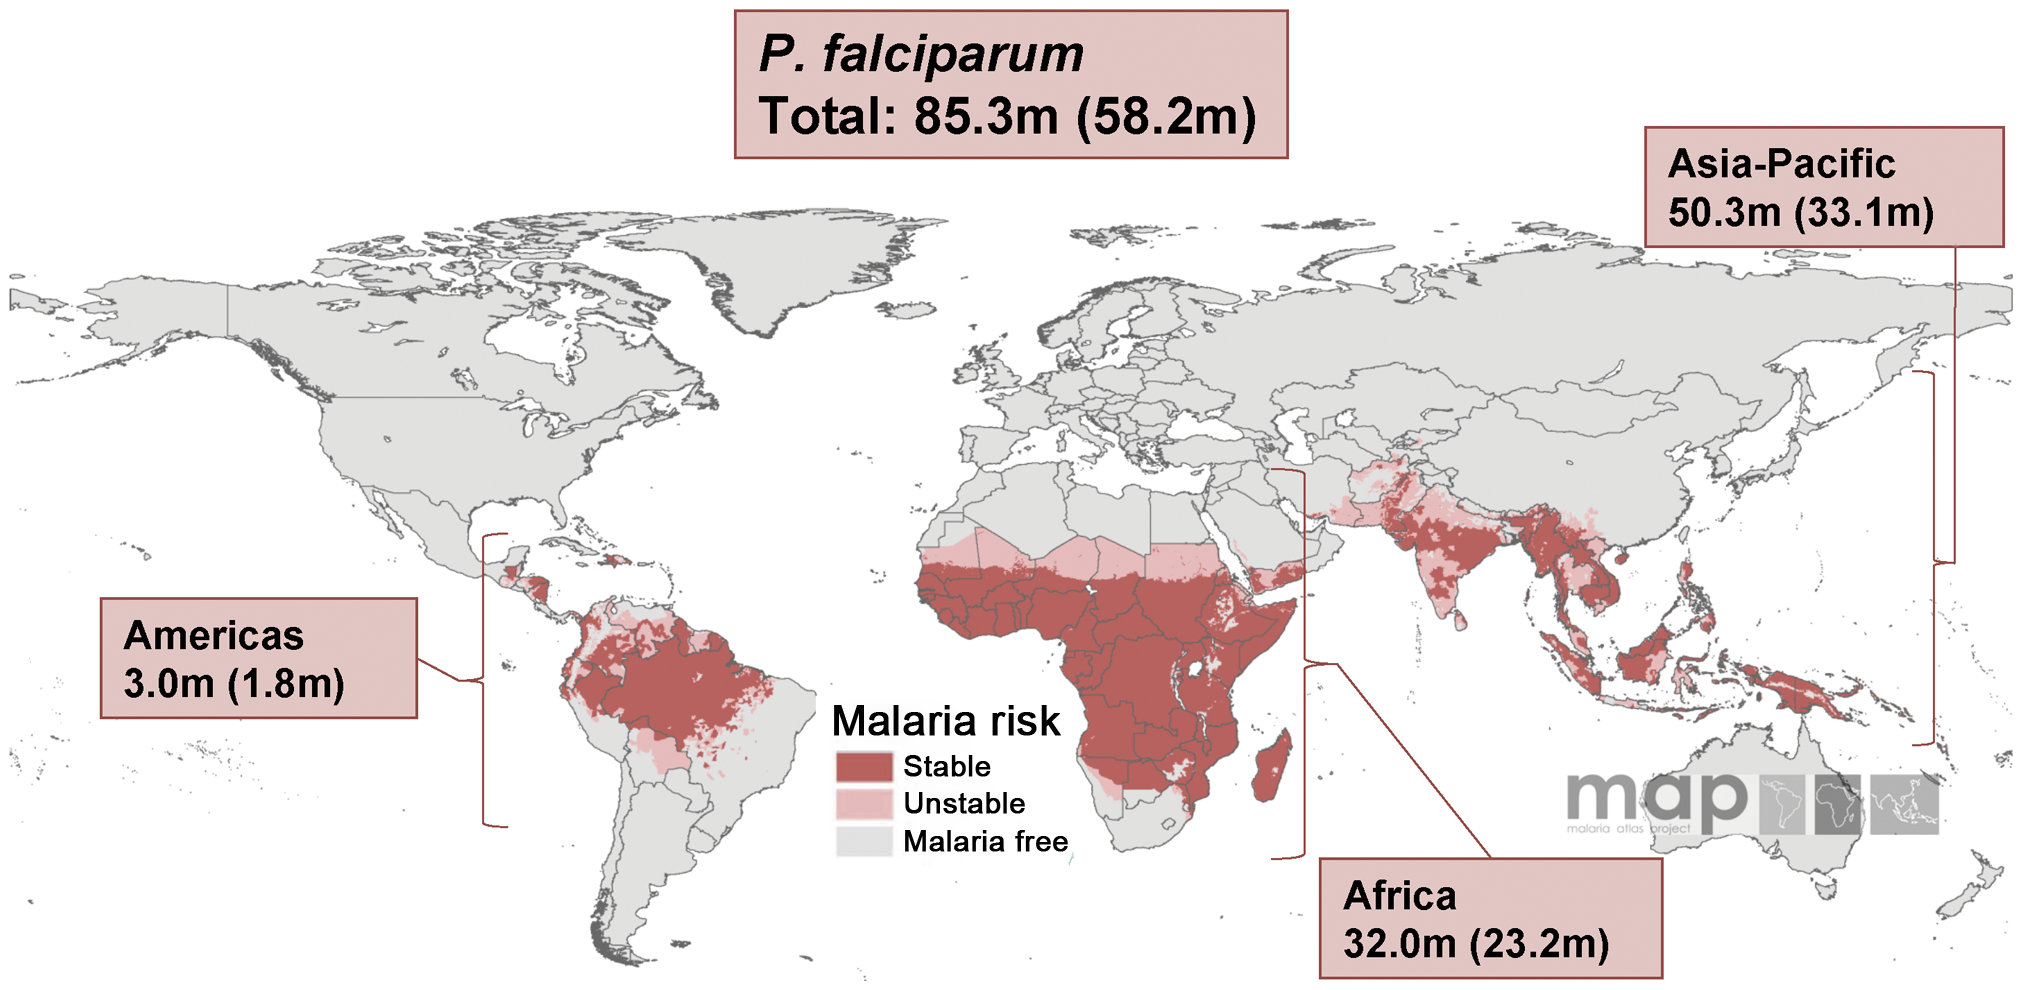 Malaria risk map for <i>P. falciparum</i> and corresponding number of pregnancies in each continent in 2007.